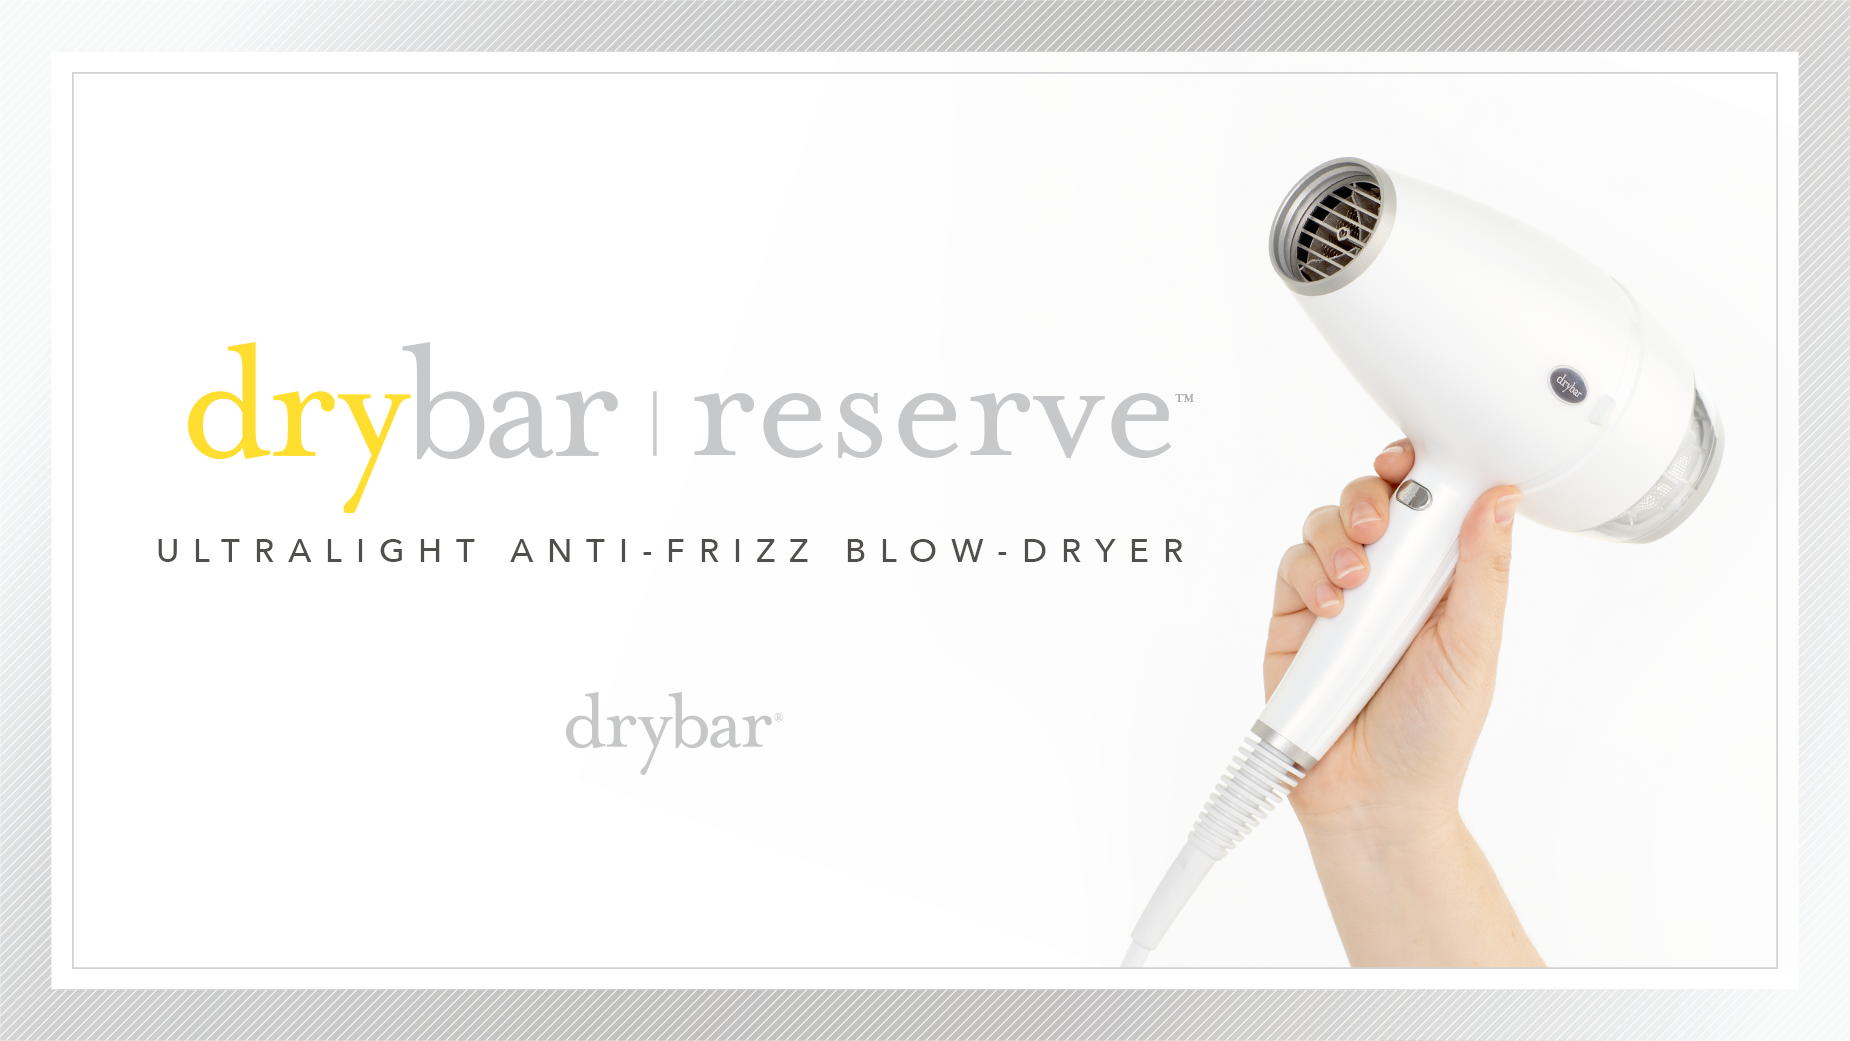 Drybar Reserve Ultralight Anti-Frizz Blow-Dryer Video